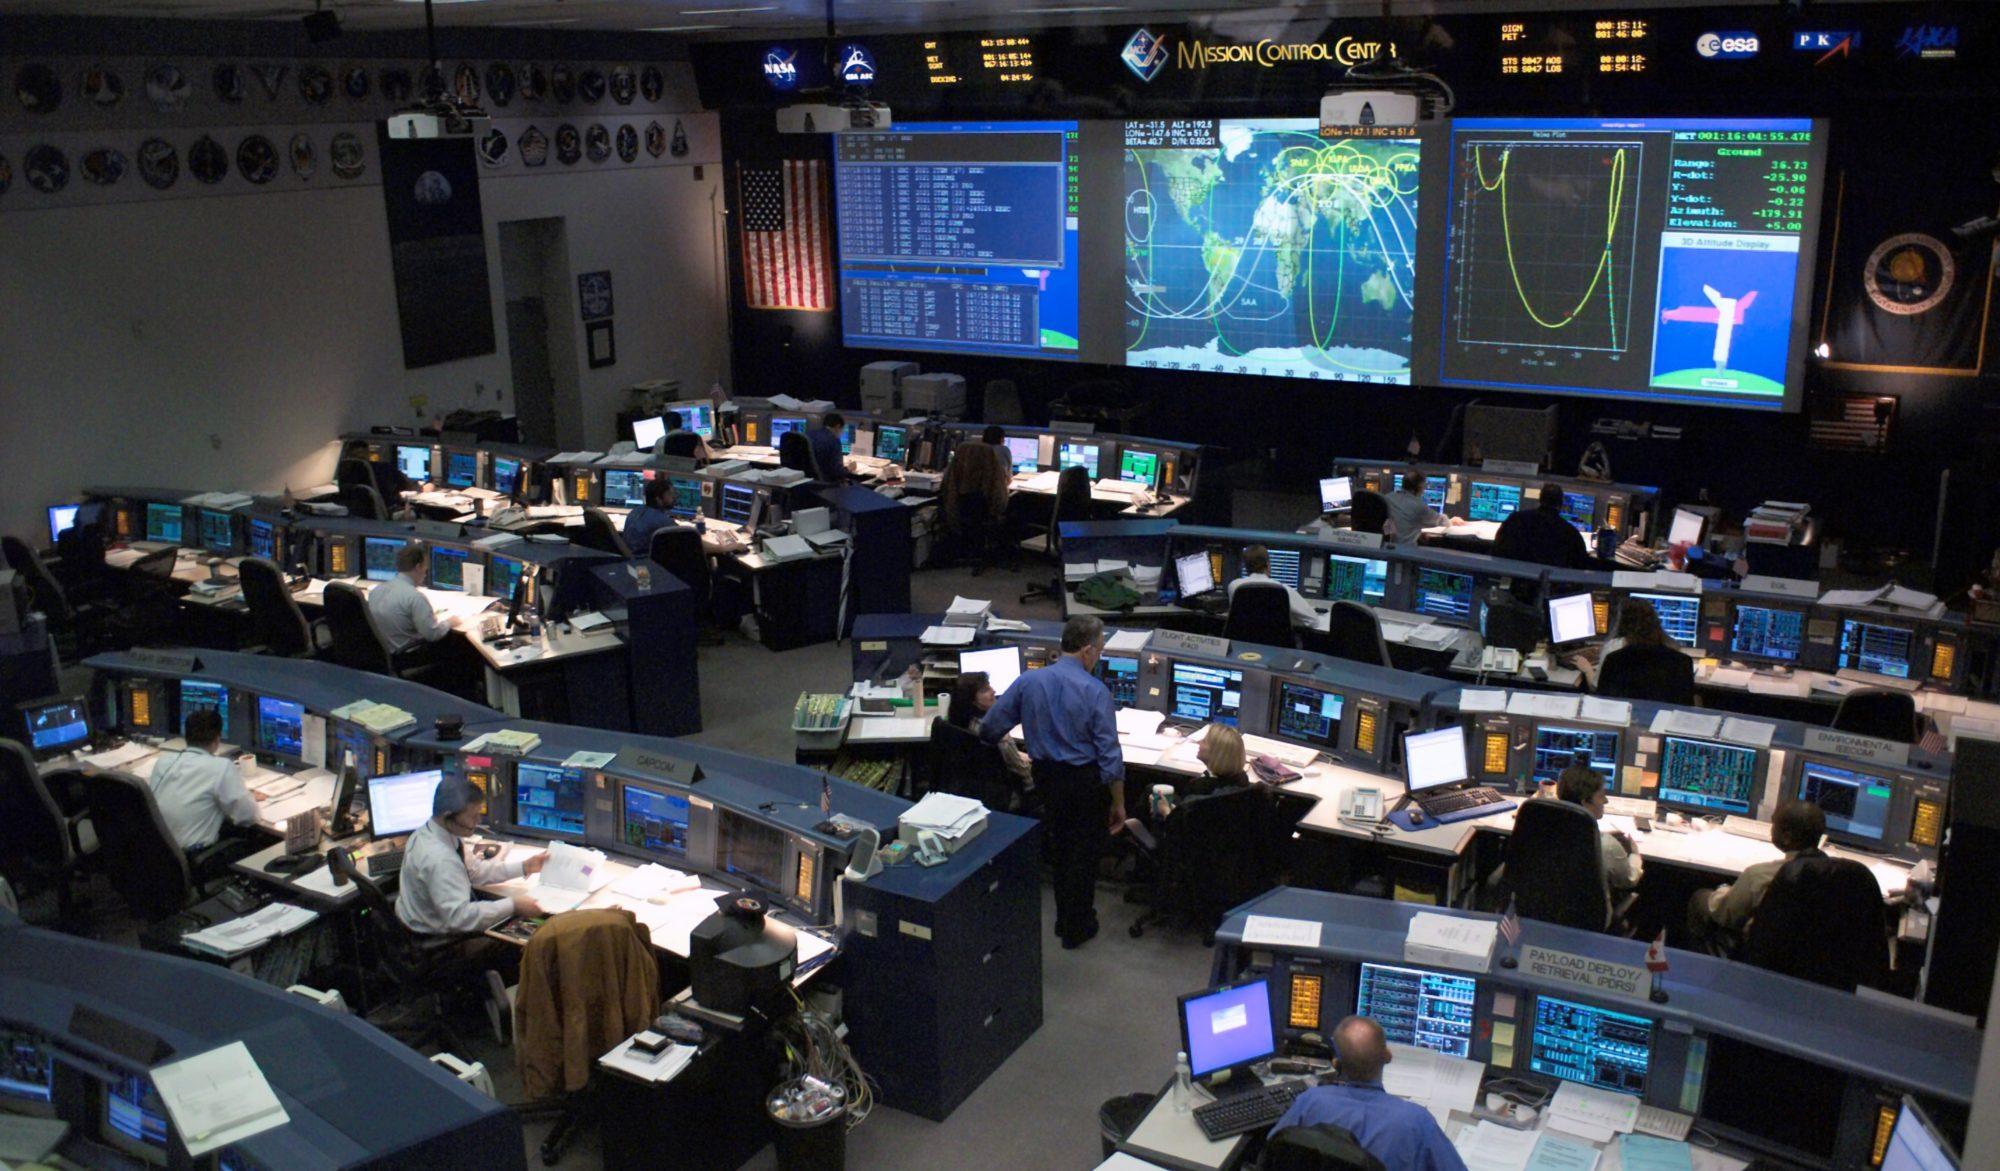 Leadership from Mission Control | Atlas Executive Consultant